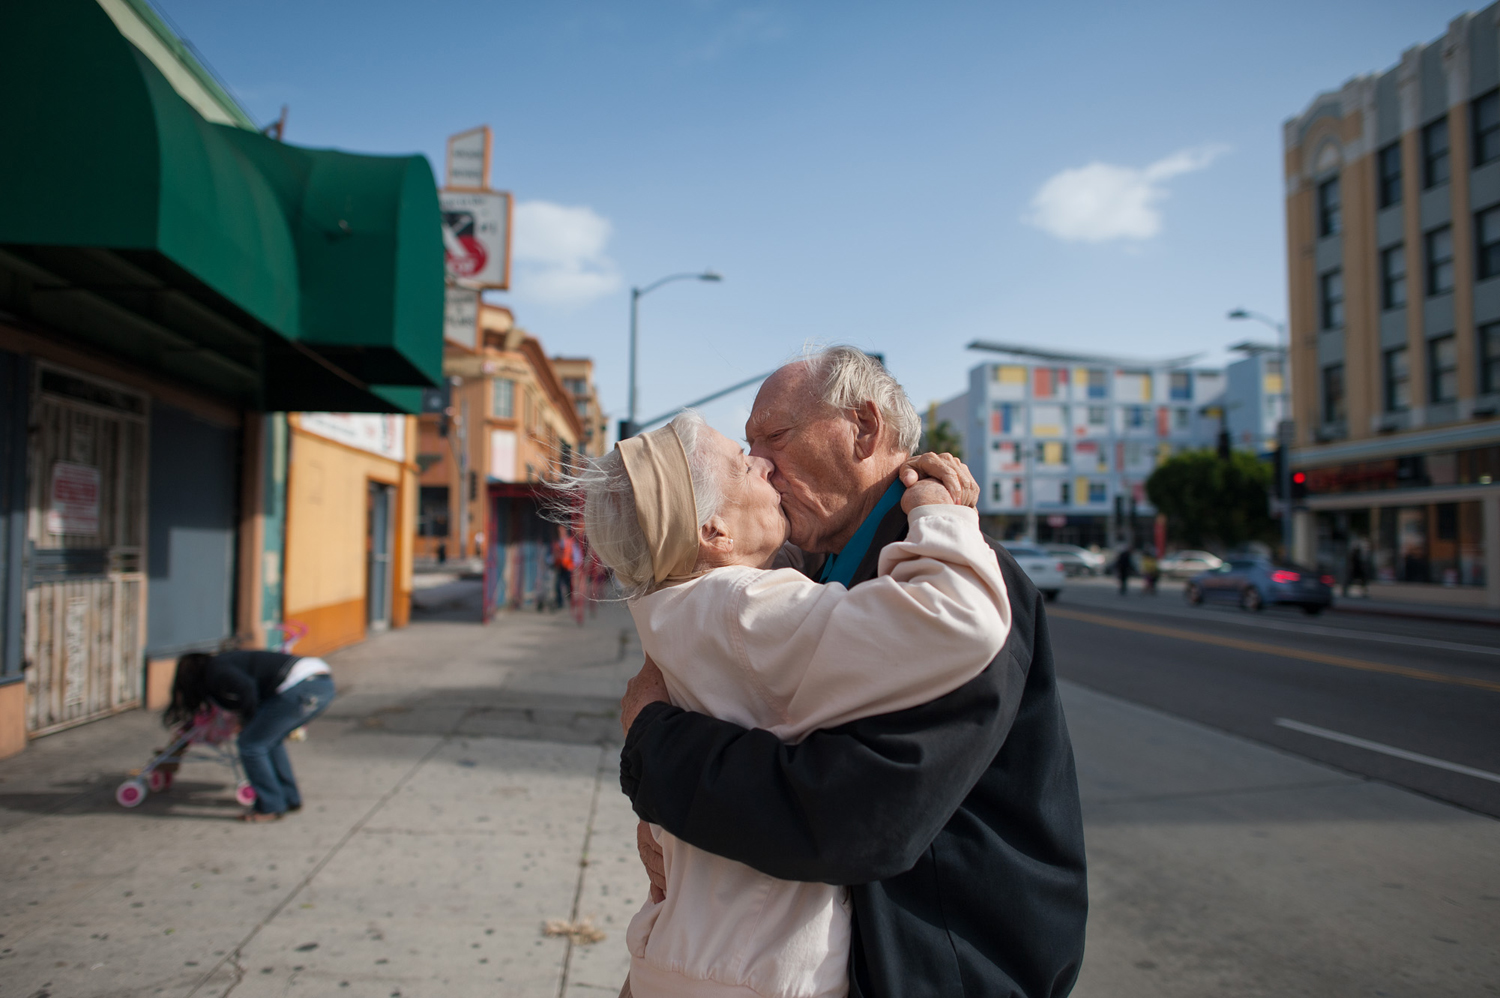 Jeanie and Will kiss, a day after a fight, 2011.